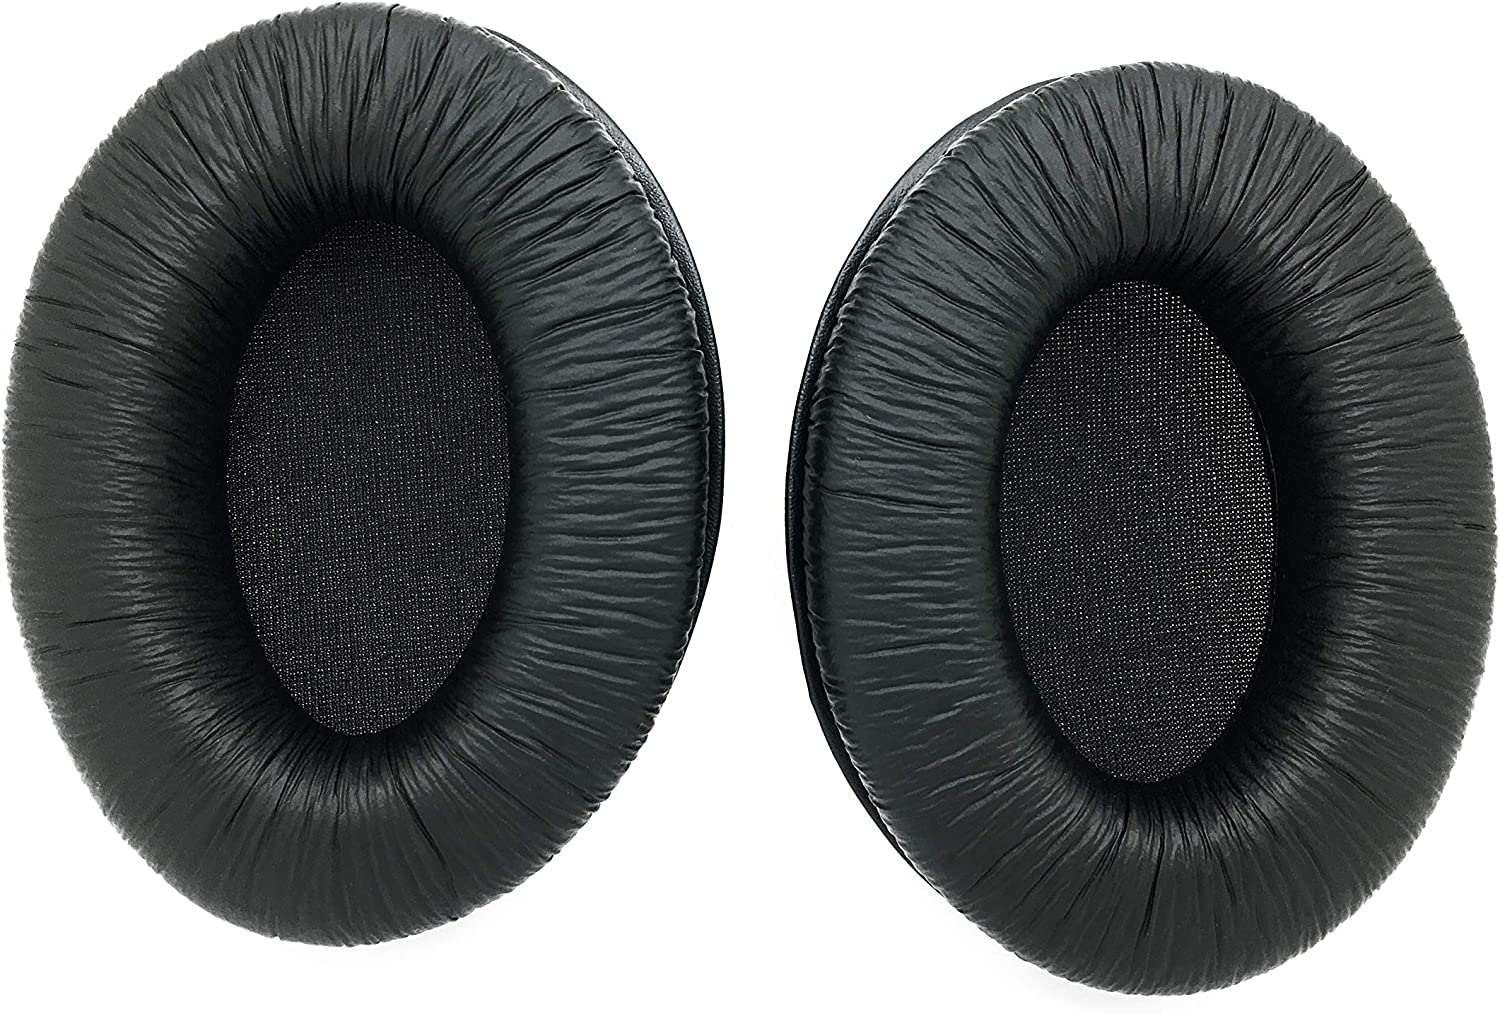 HD280 Ear Pads by National products AvimaBasics Award-winning store Cush Earpads Replacement Premium